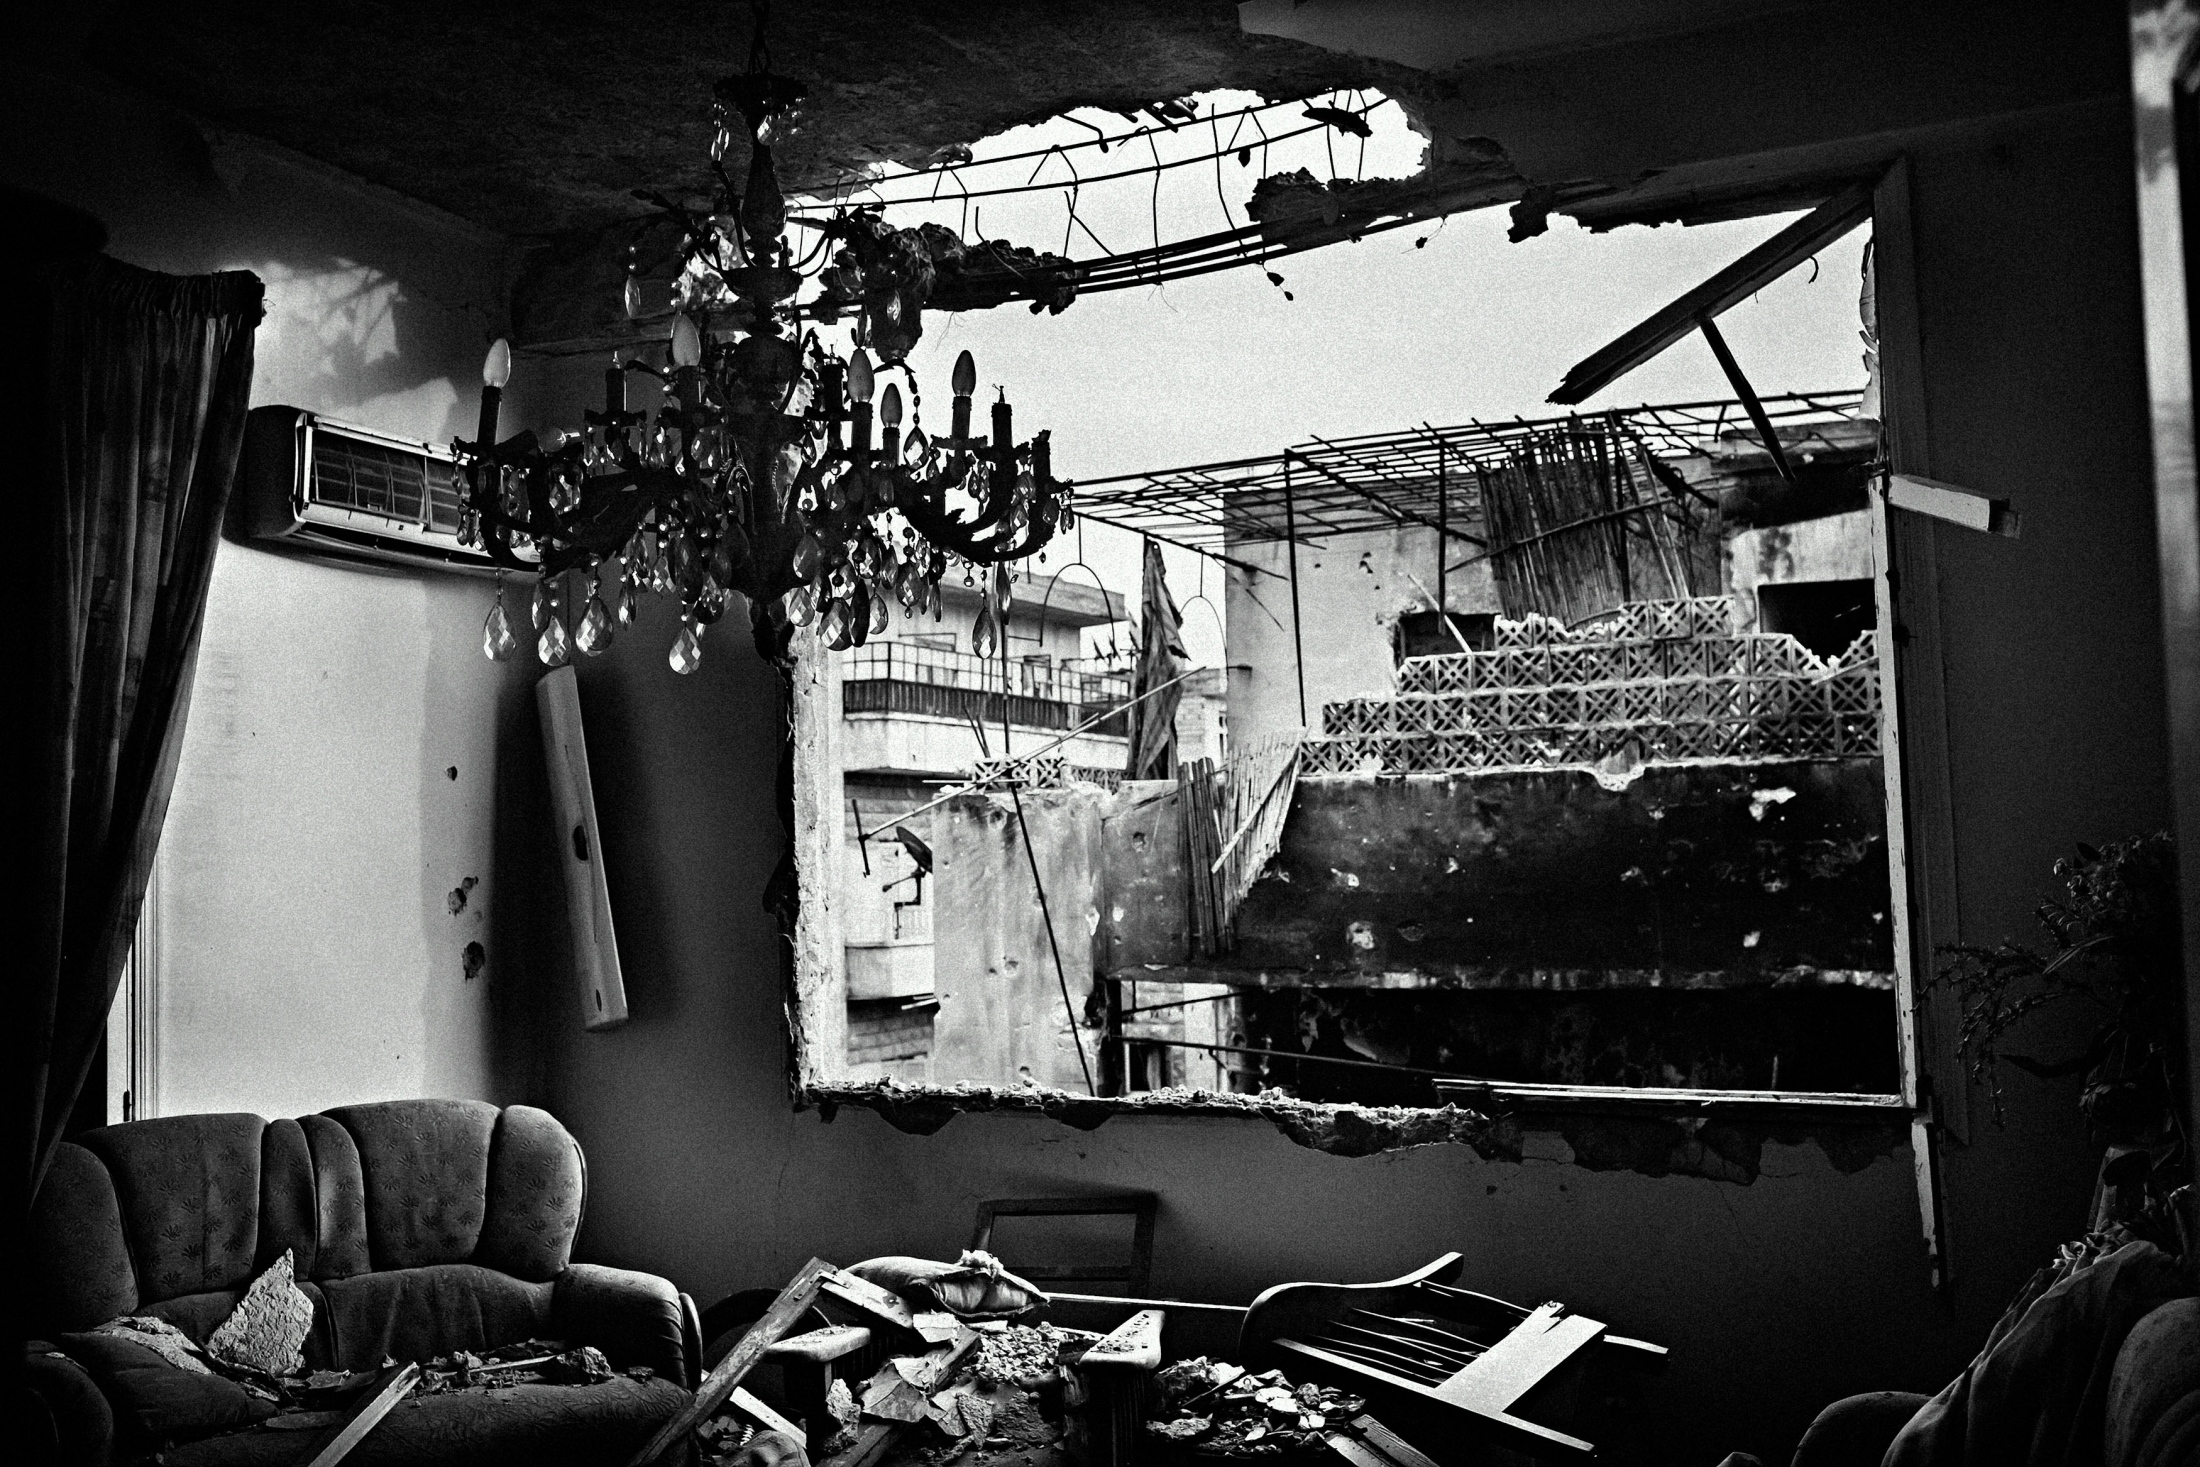 """A destroyed house in the Izaah neighborhood of Aleppo, Syria, Wednesday, Jan. 18, 2013. The United Nations estimated that more than 400,000 people have been killed in Syria's 60-month-old uprising against authoritarian rule, a toll one-third higher than what anti-regime activists had counted. The U.N. human rights chief called the toll """"truly shocking."""" Copyright: Spanish Photojournalist Andoni Lubaki"""